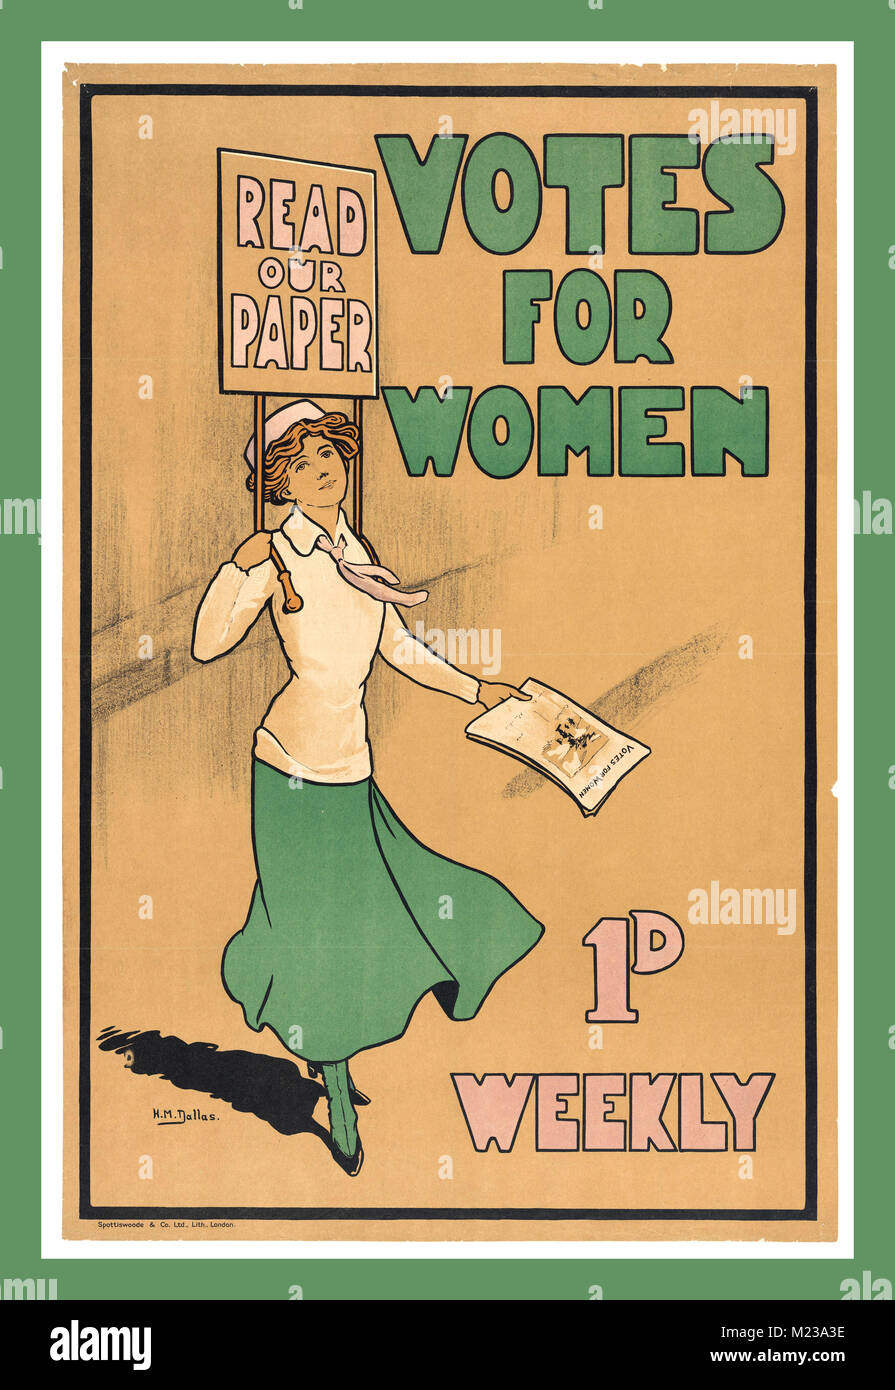 Vintage Suffrage Poster 'Votes for Women' 1d weekly Read Our Paper - Stock Image